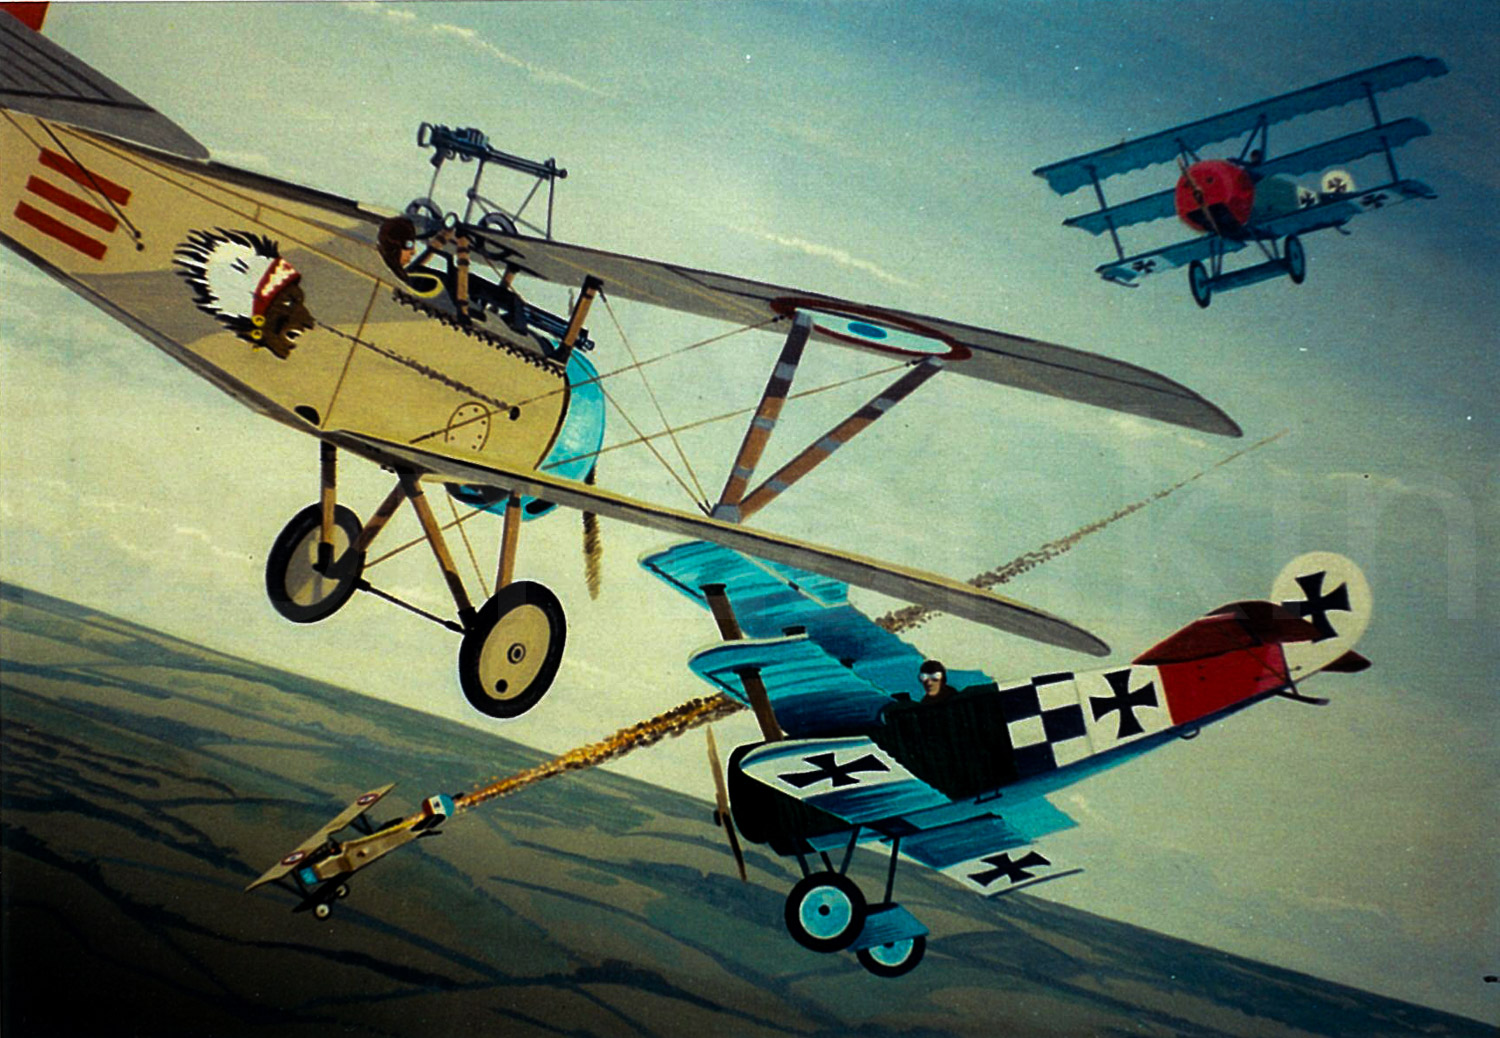 Dog fight on the western front. French Nieuport's tangle with German Fokker DRI triplanes.